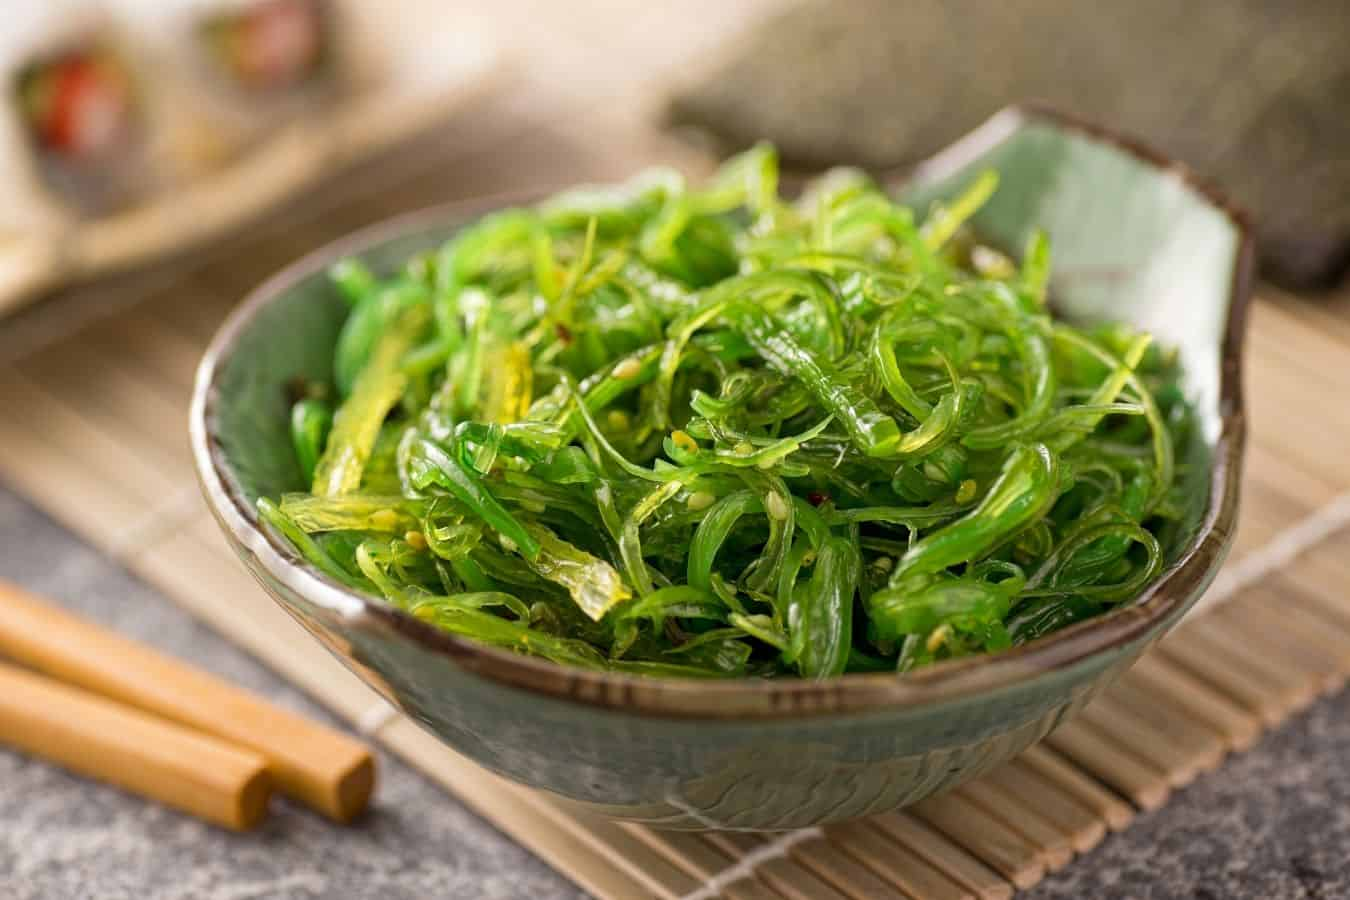 Benefits Of Seaweed For Hair